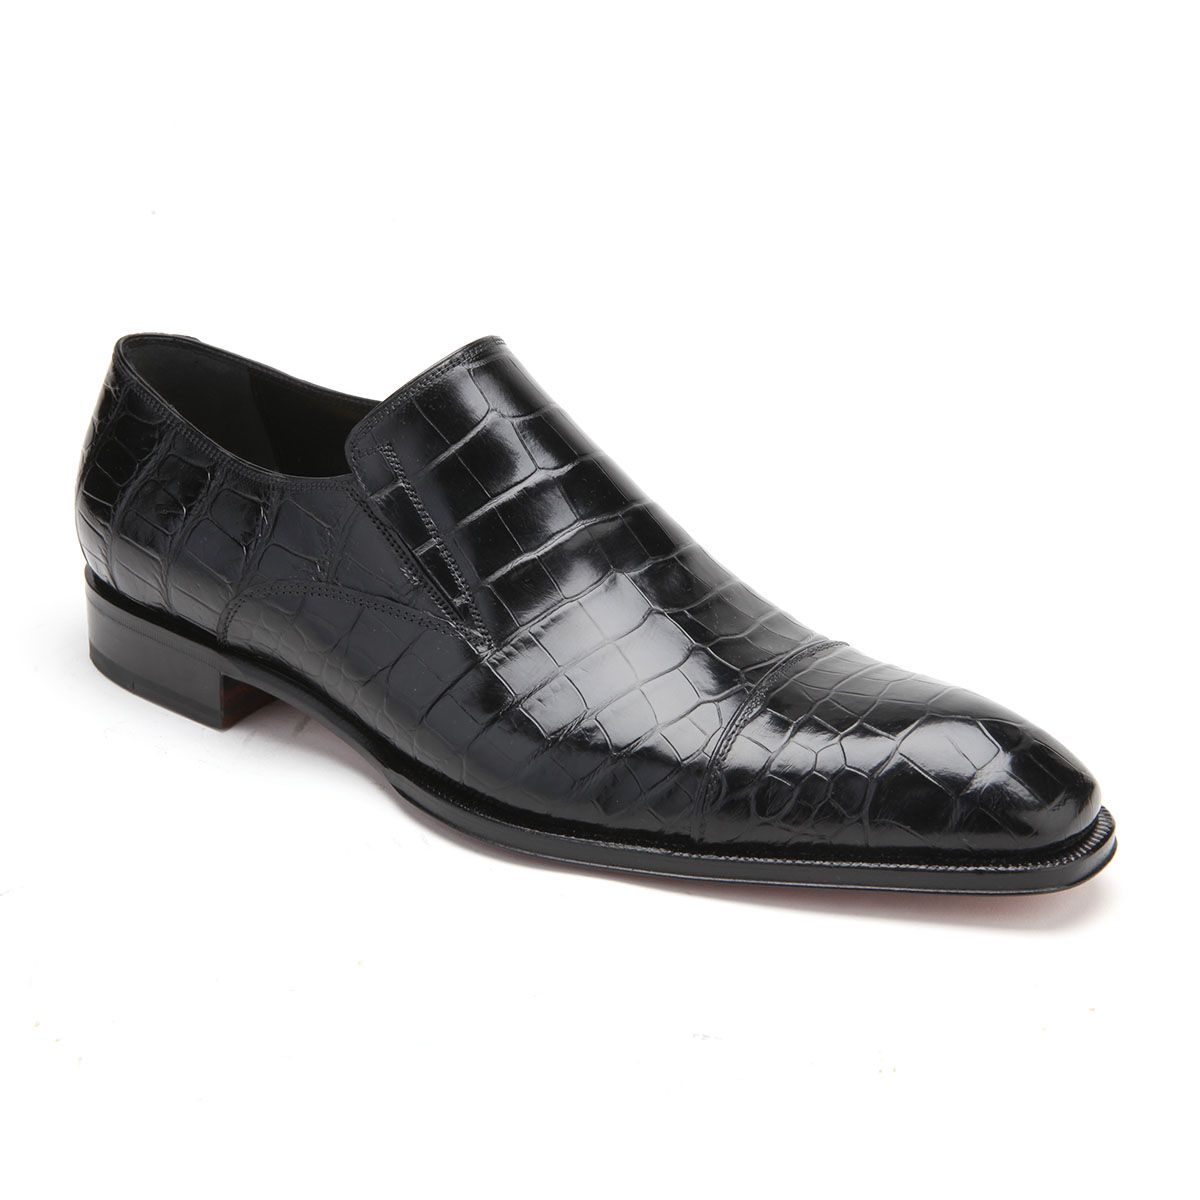 2421ac41d Caporicci Italian Mens Shoes Black Alligator Loafers ART943 (CAP1028 ...